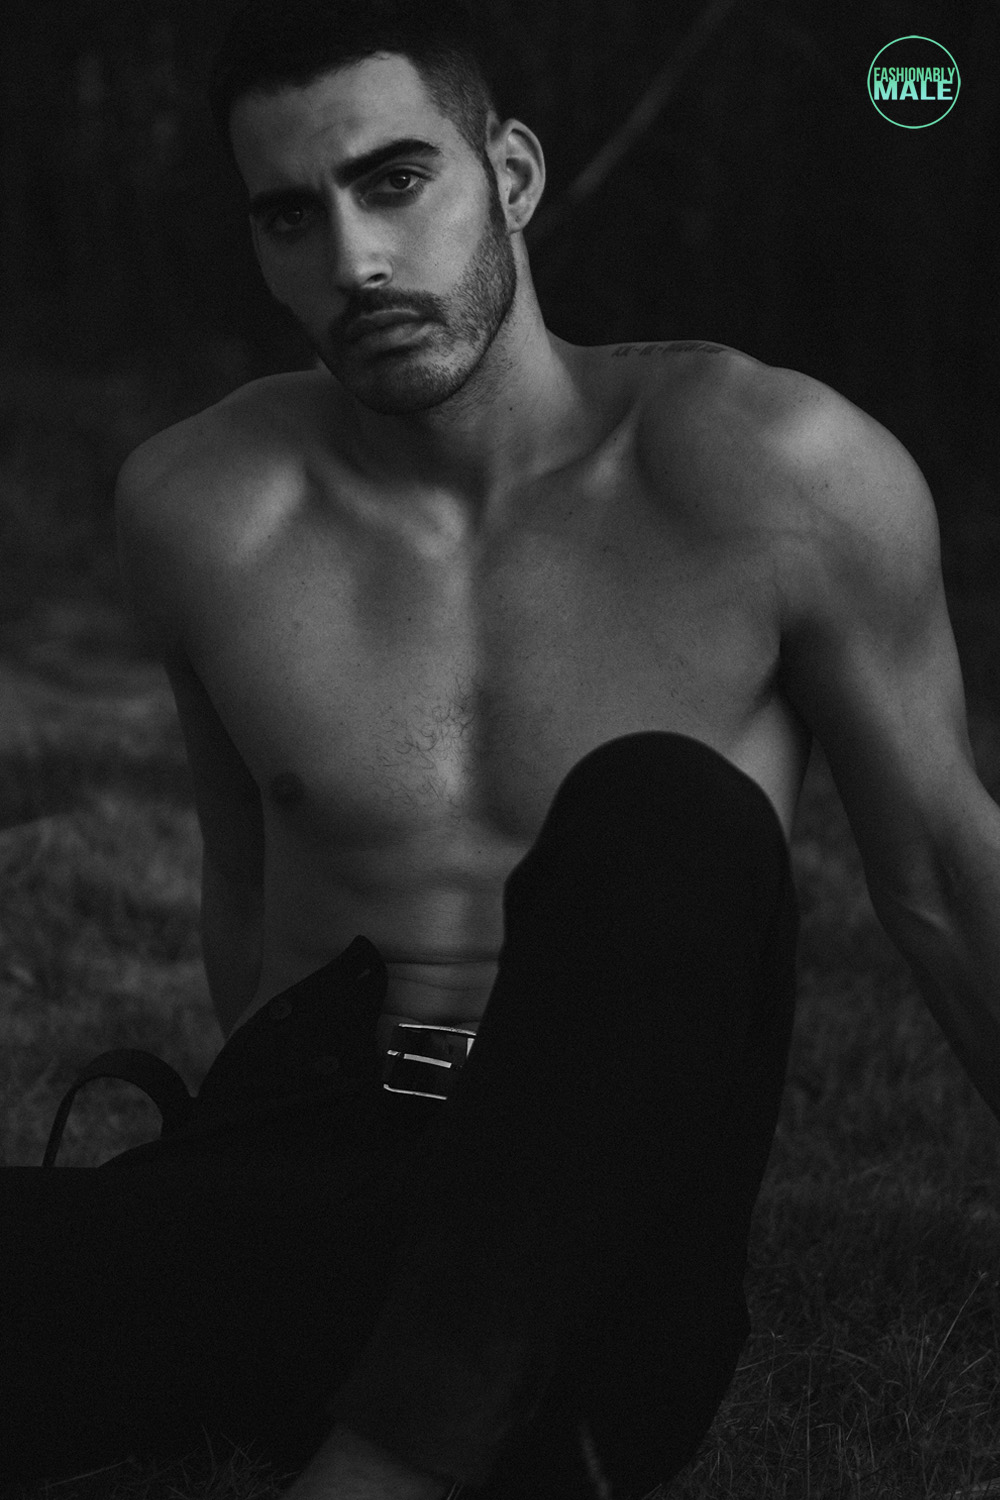 Chen Jerbi by Eran Levi for Fashionably Male6